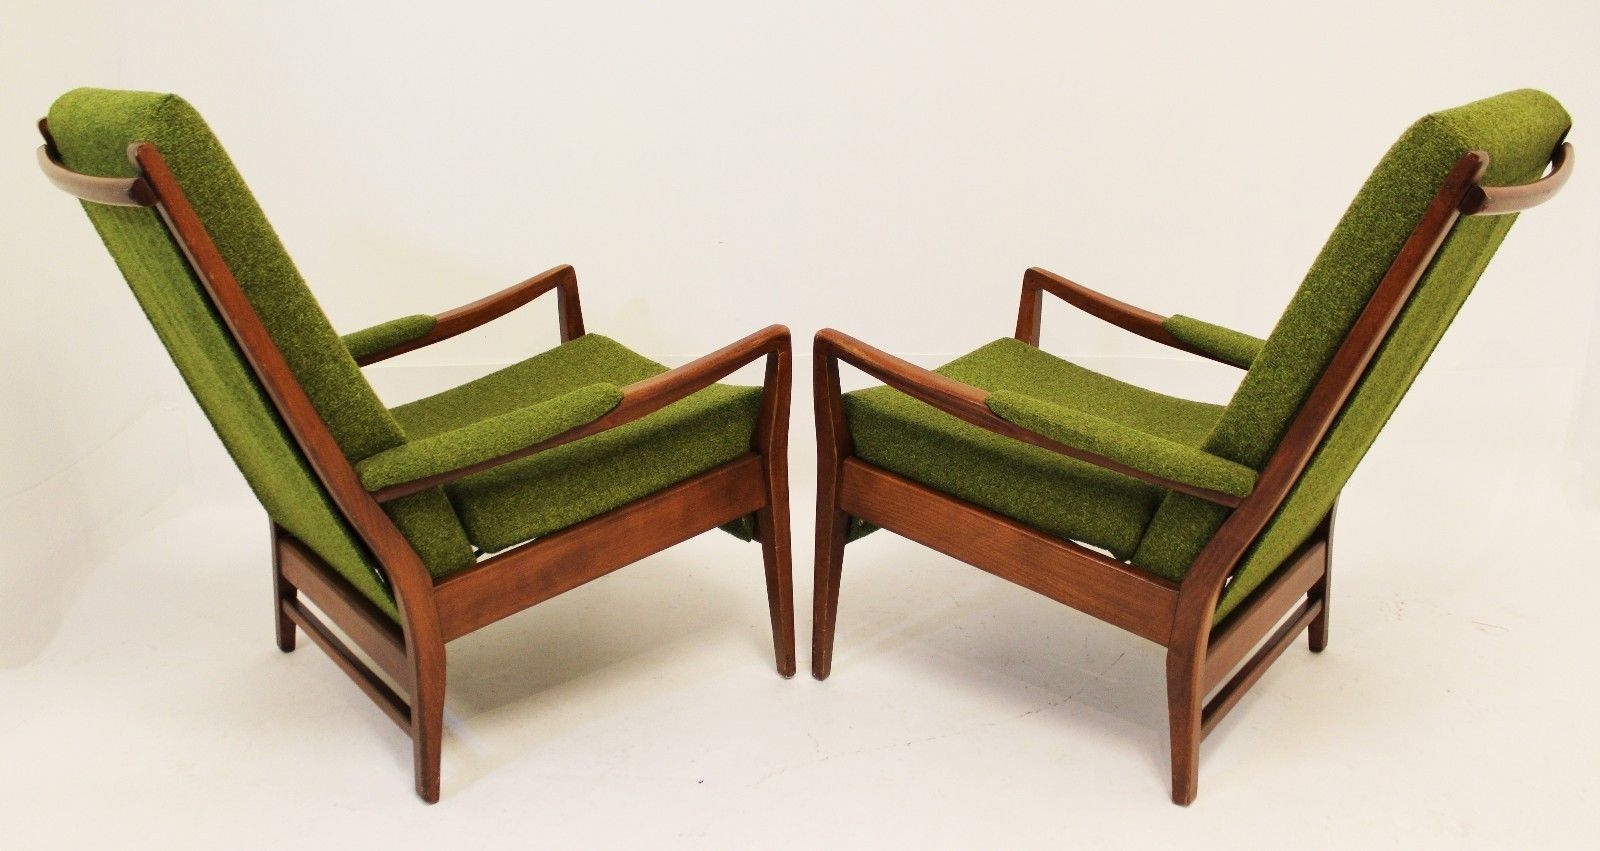 Excellent Popular Cintique Mid Century Armchairs Inside Mid Century Modern Pair Of Cintique Walnut Chairs English Larsen (Image 5 of 15)